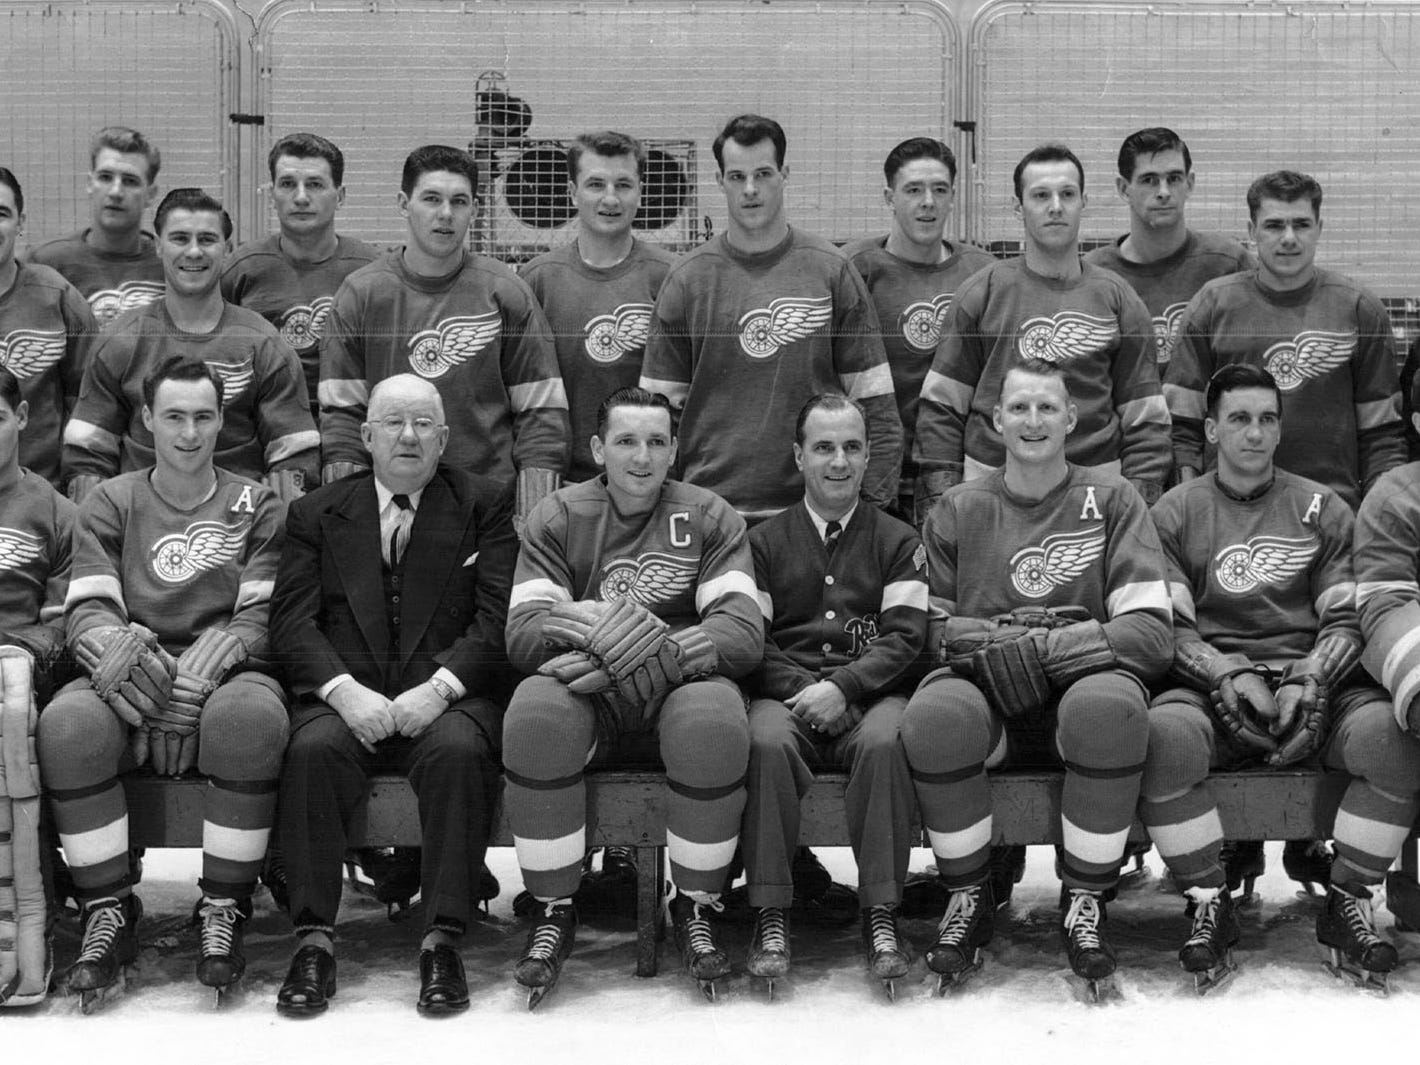 Official picture of the Detroit Red Wing squad, date unknown.  Front Row (left to right) Harry Lumley, Jack Stewart, General Manager Jack Adams, Capt. Sid Abel, Coach Tommy Ivan, Bill Quackenbush, Paul McGratton.  Middle row:  Walter Crossman, Earl Mattson, Jim Conacher, Fern Gauthier, Len Kelly, Leo Reise, Gordon Howe, Don Morrison, Ernie Burton, Trainer Frank Walker.  Top Row: Marty Pavelich, Bep Guidolin, Pete Horeck, Jim McFadden, Ted Lindsay, Rod Morrison, Seated in front Mascot Mike McGeary.